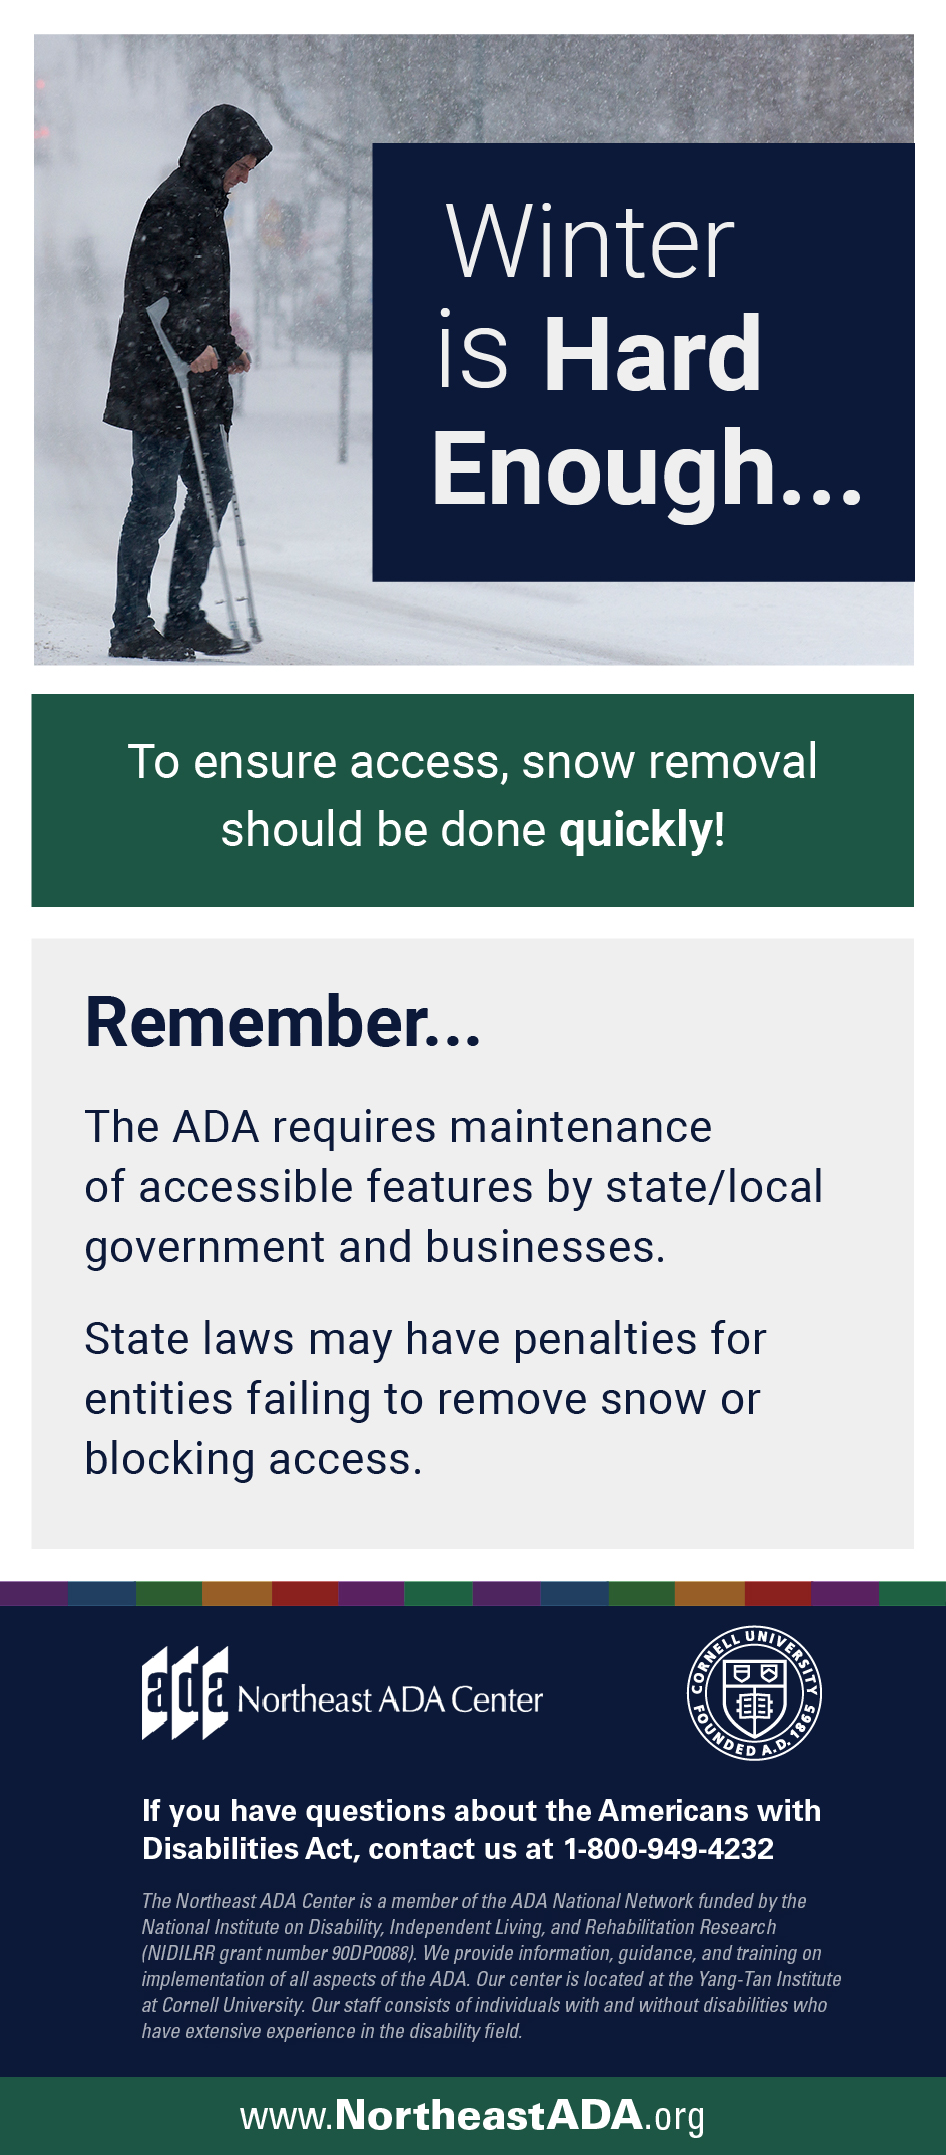 Infographic featuring a man using crutches walking through the snow. Winter is hard enough... To ensure access, snow removal should be done quickly! Remember... The ADA requires maintenance of accessible features by state/local government and businesses. State laws may have penalties for entities failing to remove snow or blocking access. If you have questions about the Americans with Disabilities Act, contact the Northeast ADA Center at 1-800-949-4232